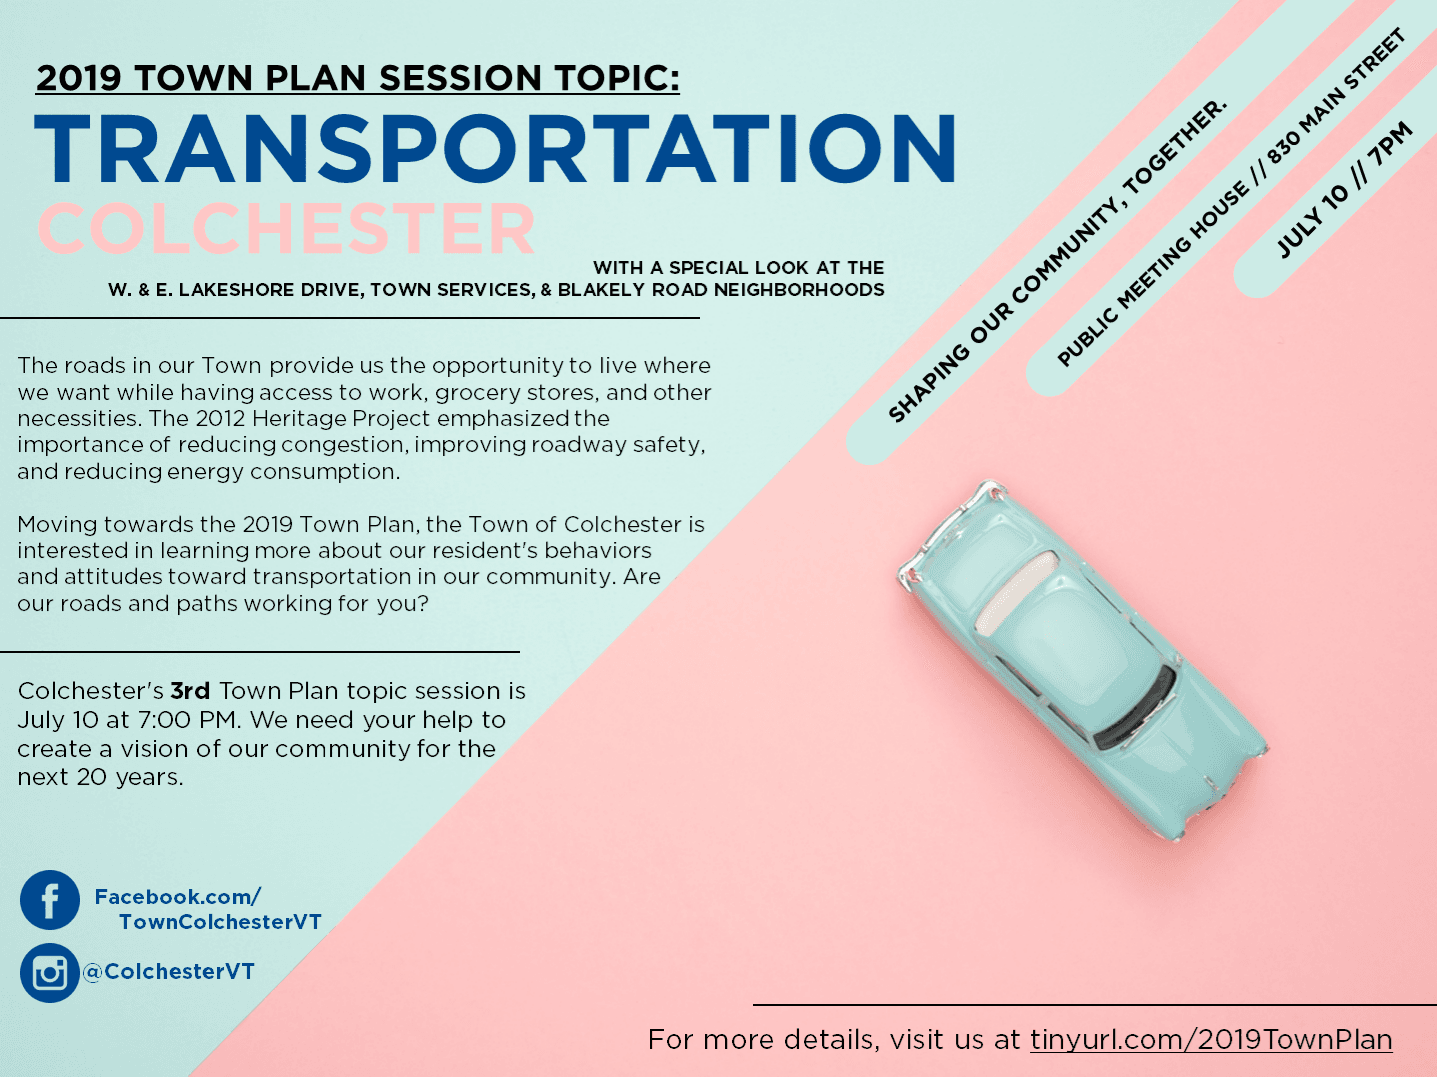 TP Topic - Transportation